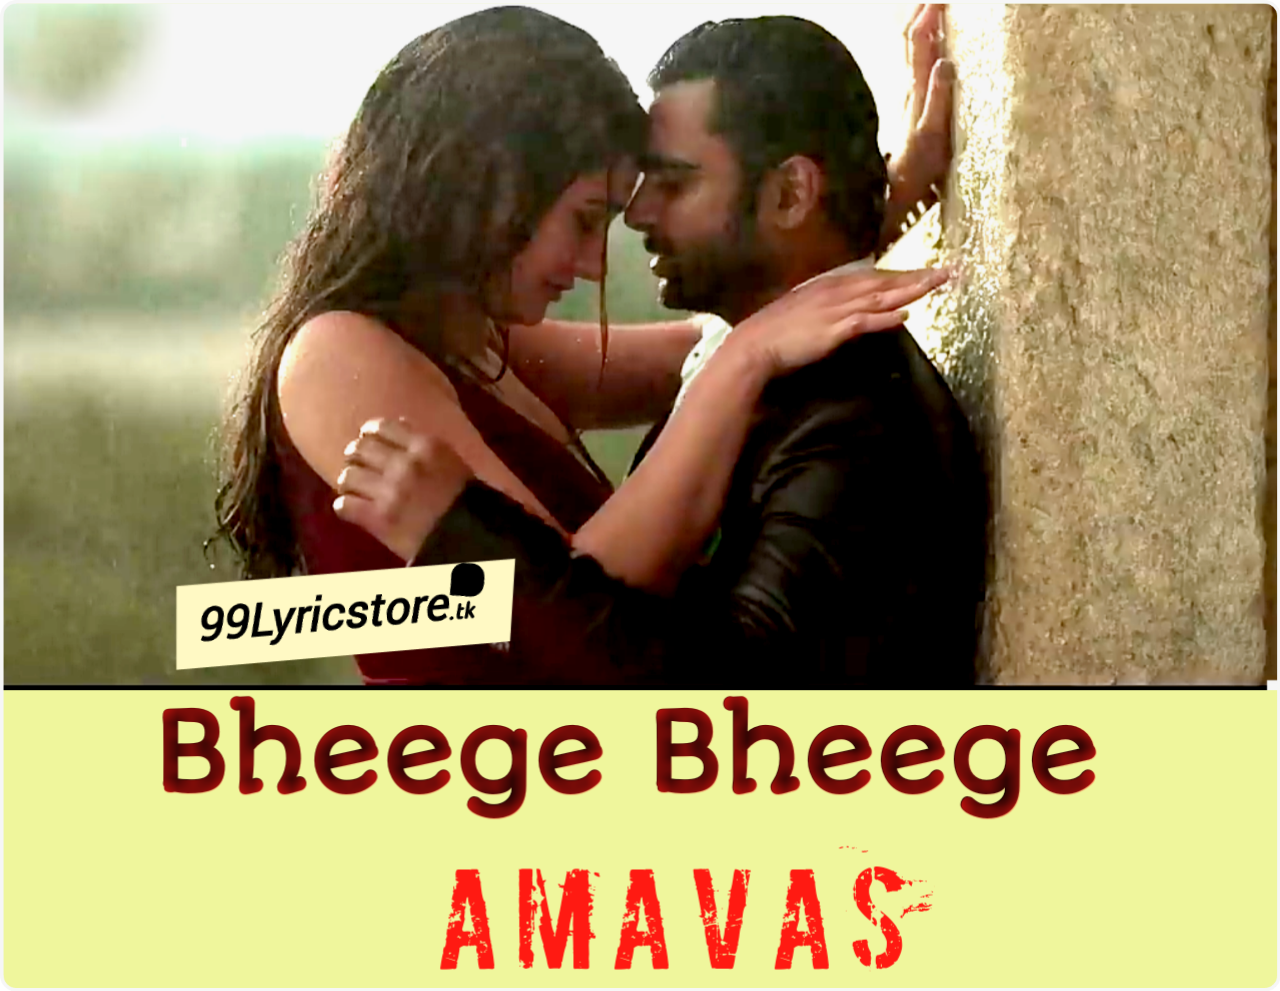 Bheege bheege Lyrics , Bheege bheege Lyrics Amavas , Amavas bheege bheege Lyrics , Ankit Tiwari Song bheege bheege Lyrics Amavas , sunidhi Chauhan song bheege bheege Lyrics Amavas , Amavas song bheege bheege images